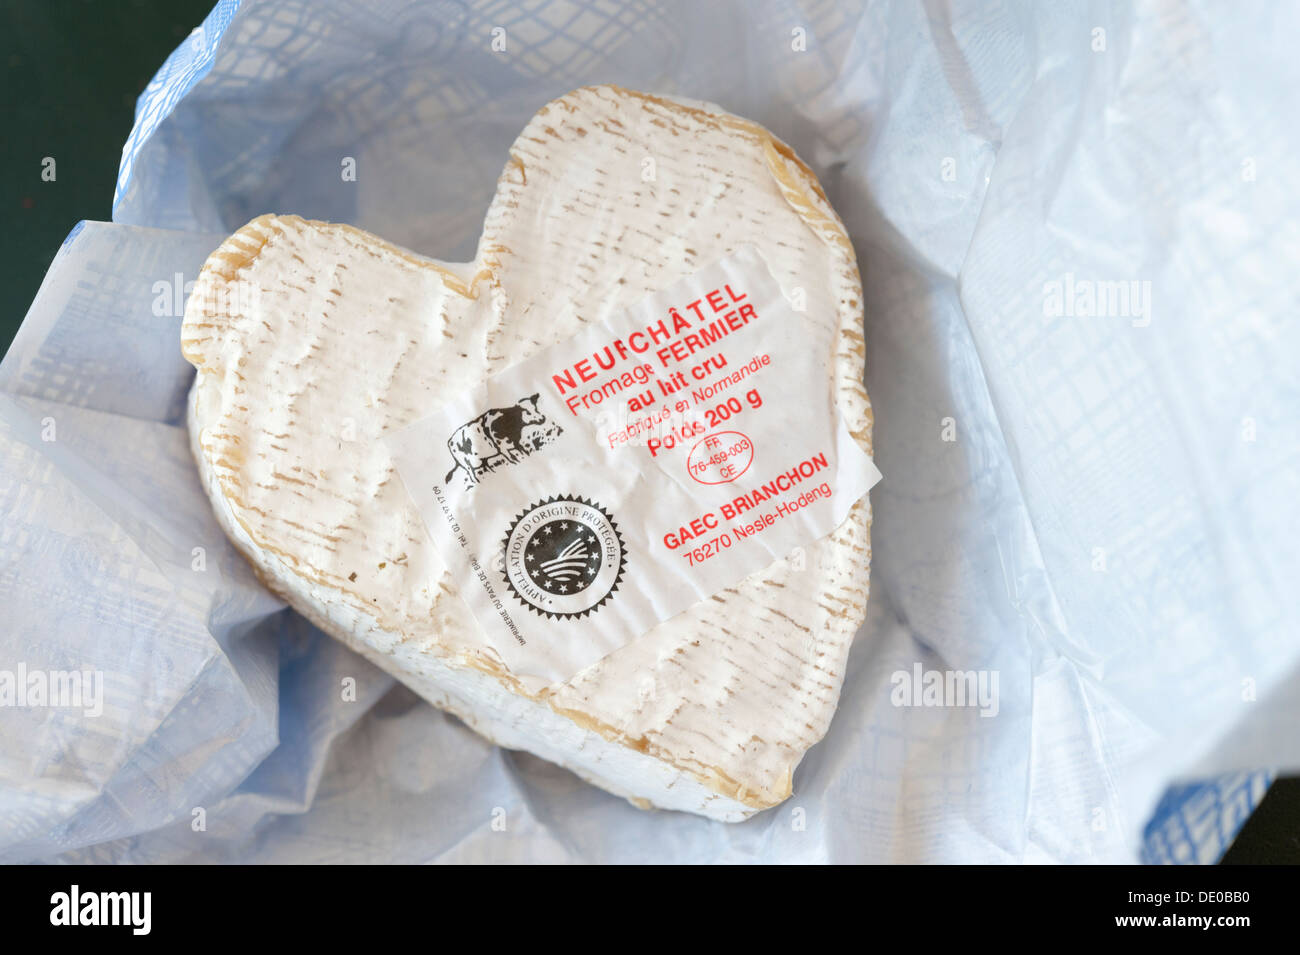 Neufchatel cheese from Normandy France - Stock Image